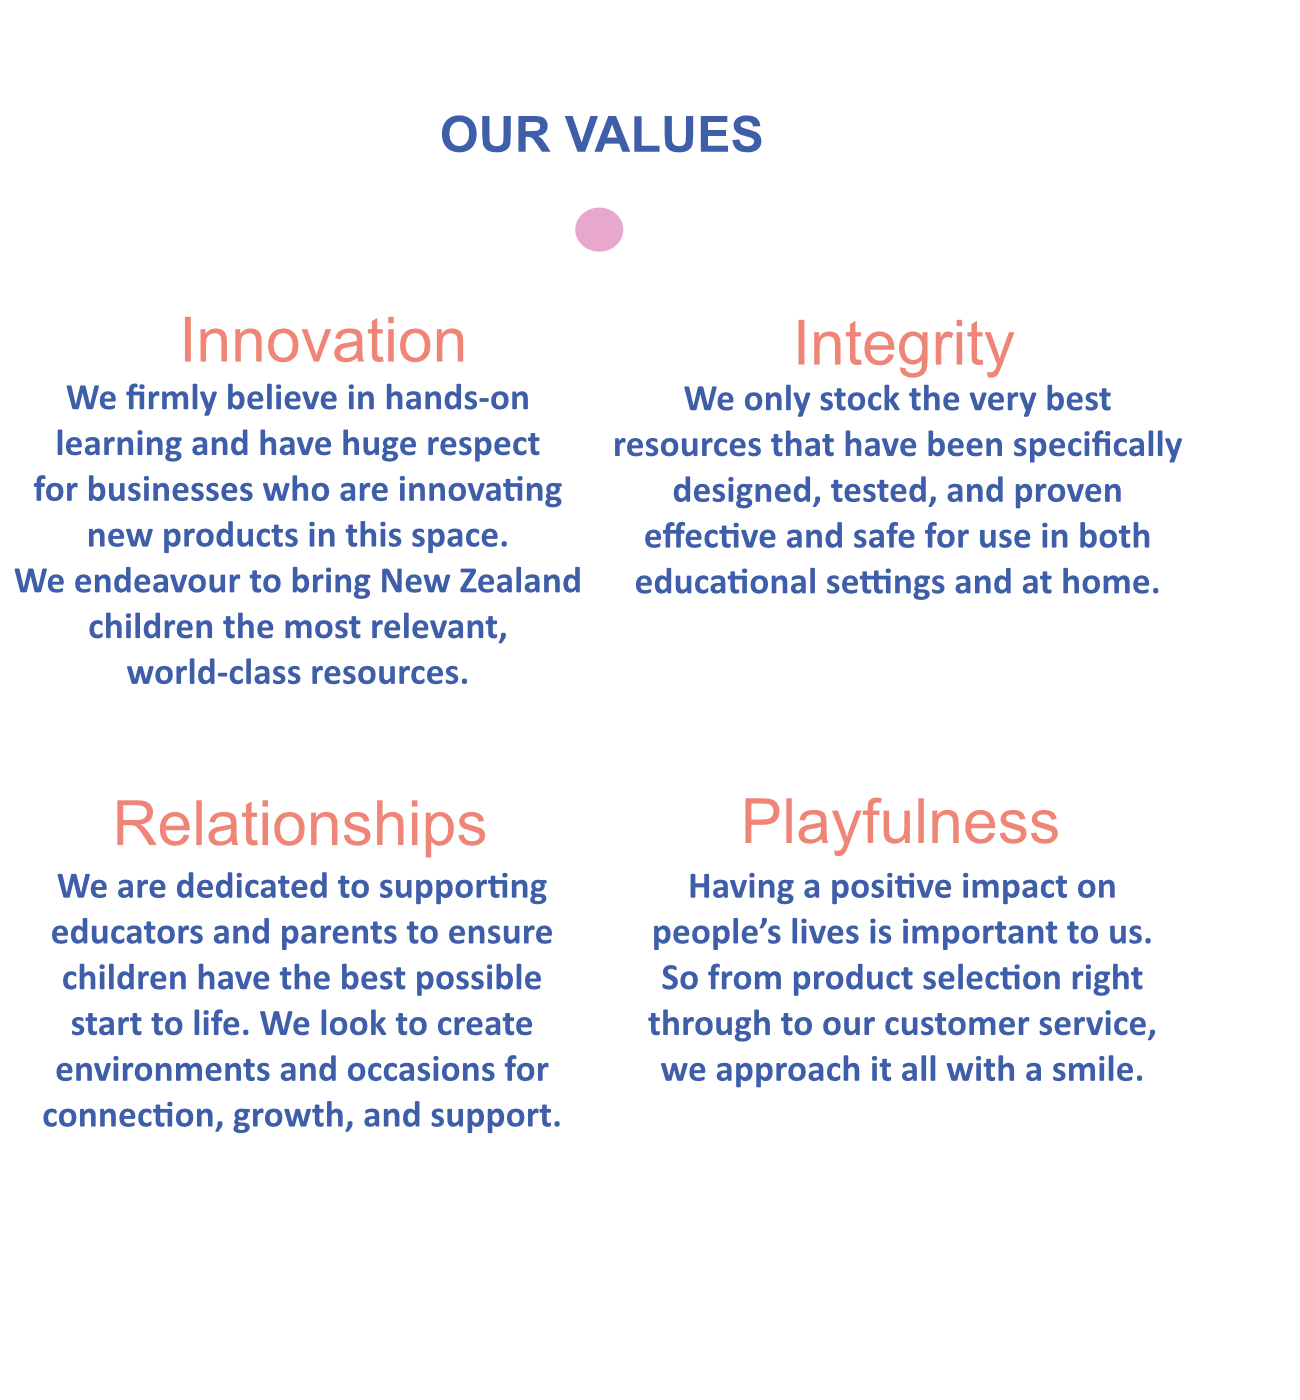 Innovation - We firmly believe in hands-on learning and have huge respect for businesses who are innovating new products in this space. We endeavour to bring New Zealand children the most relevant, world-class resources. Integrity - We only stock the very best resources that have been specifically designed, tested, and proven effective and safe for use in both educational settings and at home. Relationships - We are dedicated to supporting educators and parents to ensure children have the best possible start to life. We look to create environments and occasions for connection, growth, and support. Playfulness - Having a positive impact on people's lives is important to us. So from product selection right through to our customer service, we approach it all with a smile.